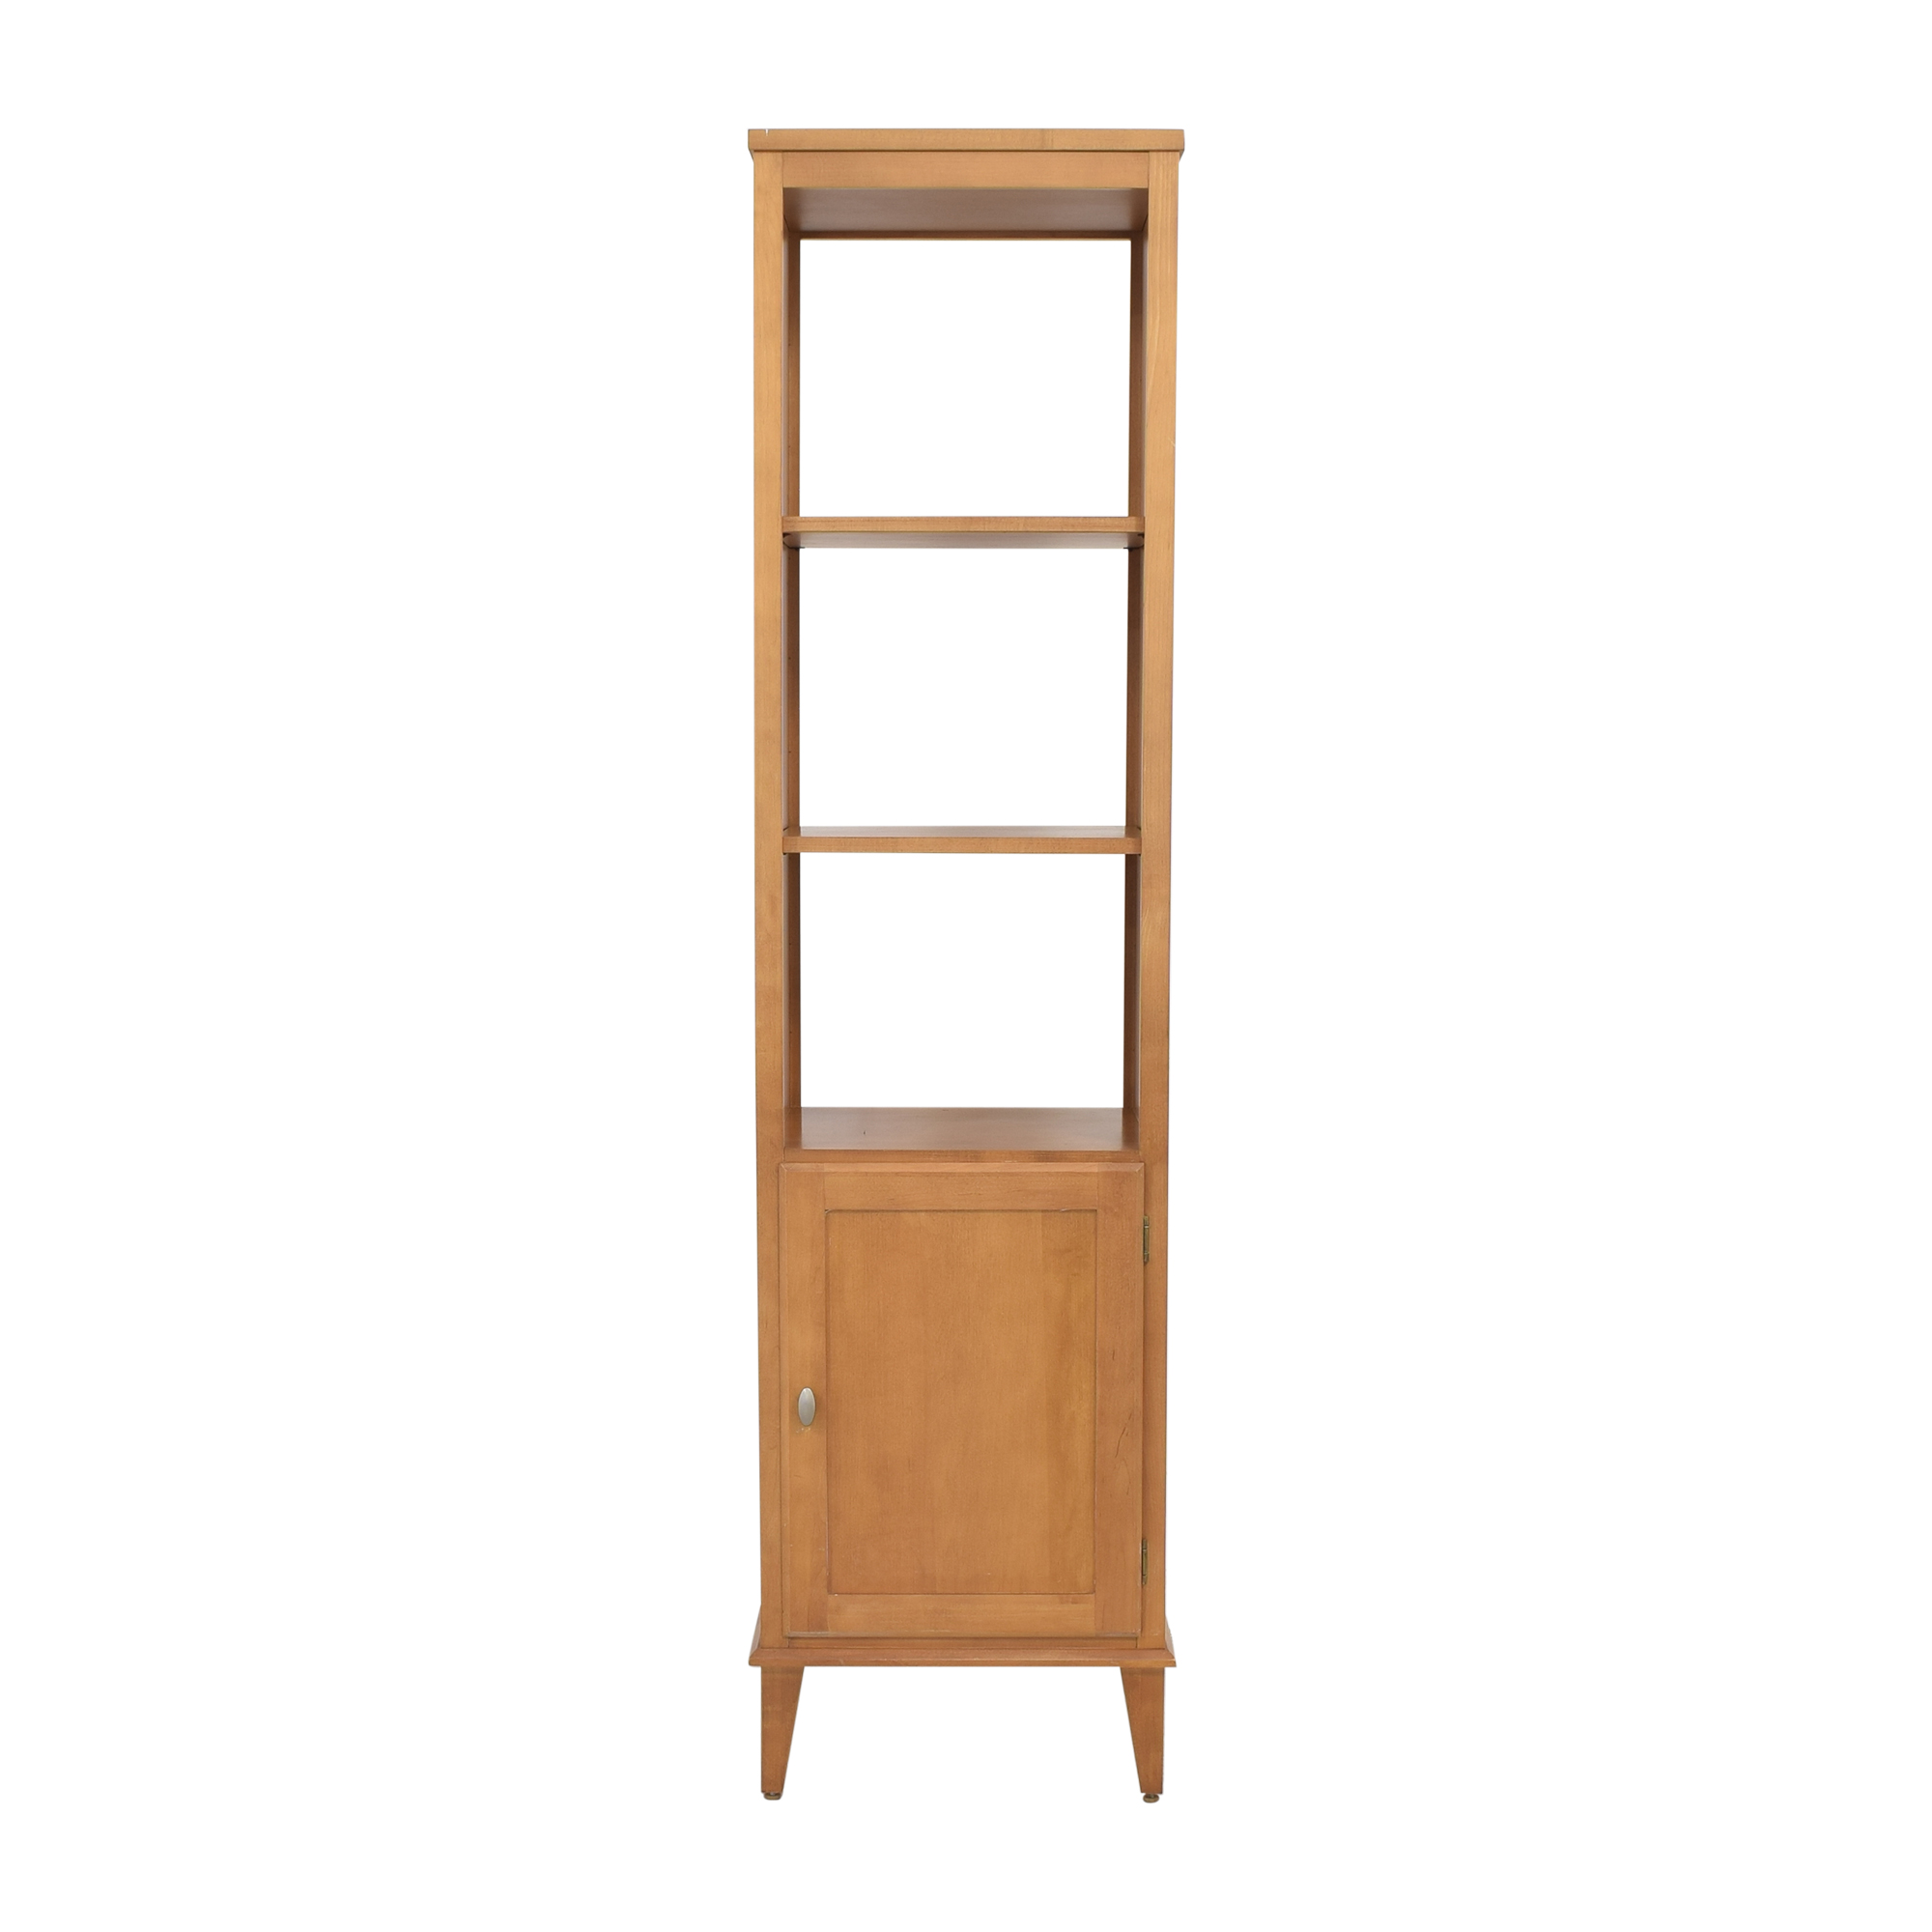 Ethan Allen Ethan Allen Elements Bookcase dimensions